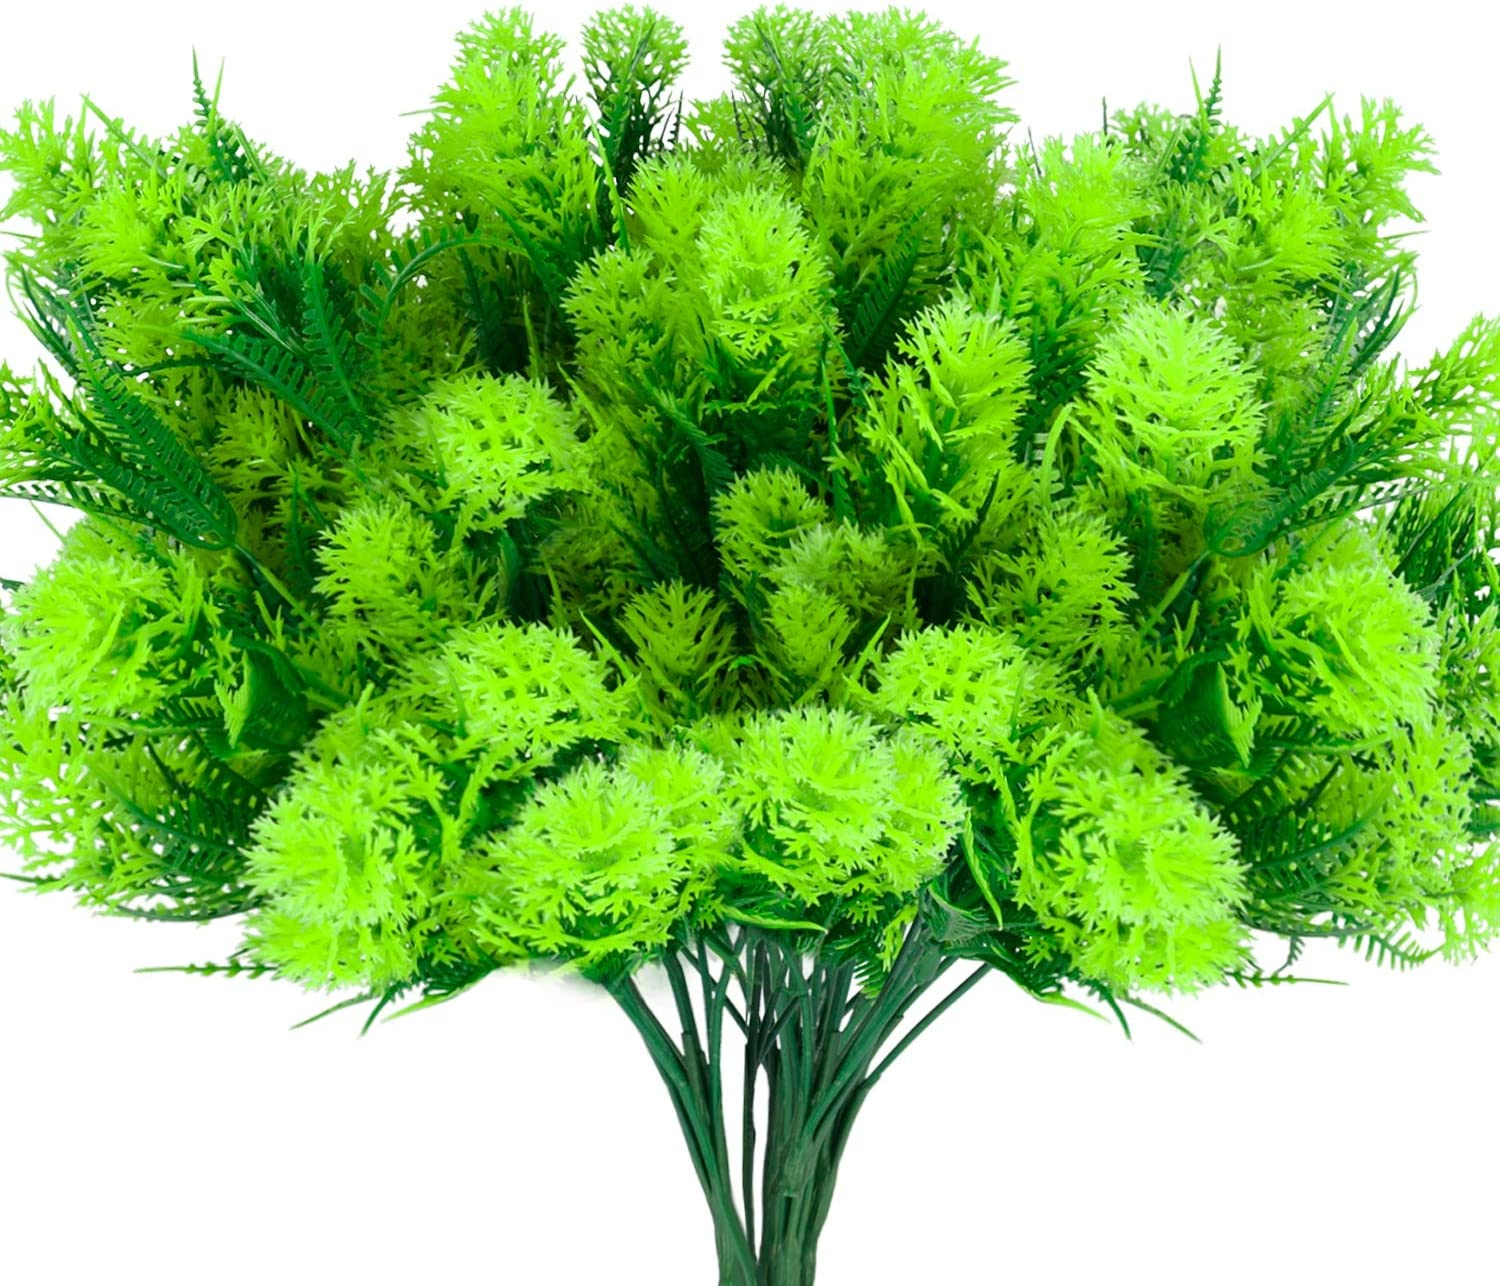 BOUGUI Artificial Fake Flowers, 6 Bundles Large UV Resistant Faux Plastic Greenery Foliage Plants Shrubs for Garden, Wedding, Outside Hanging Planter, Farmhouse Indoor or Outdoor etc Decor